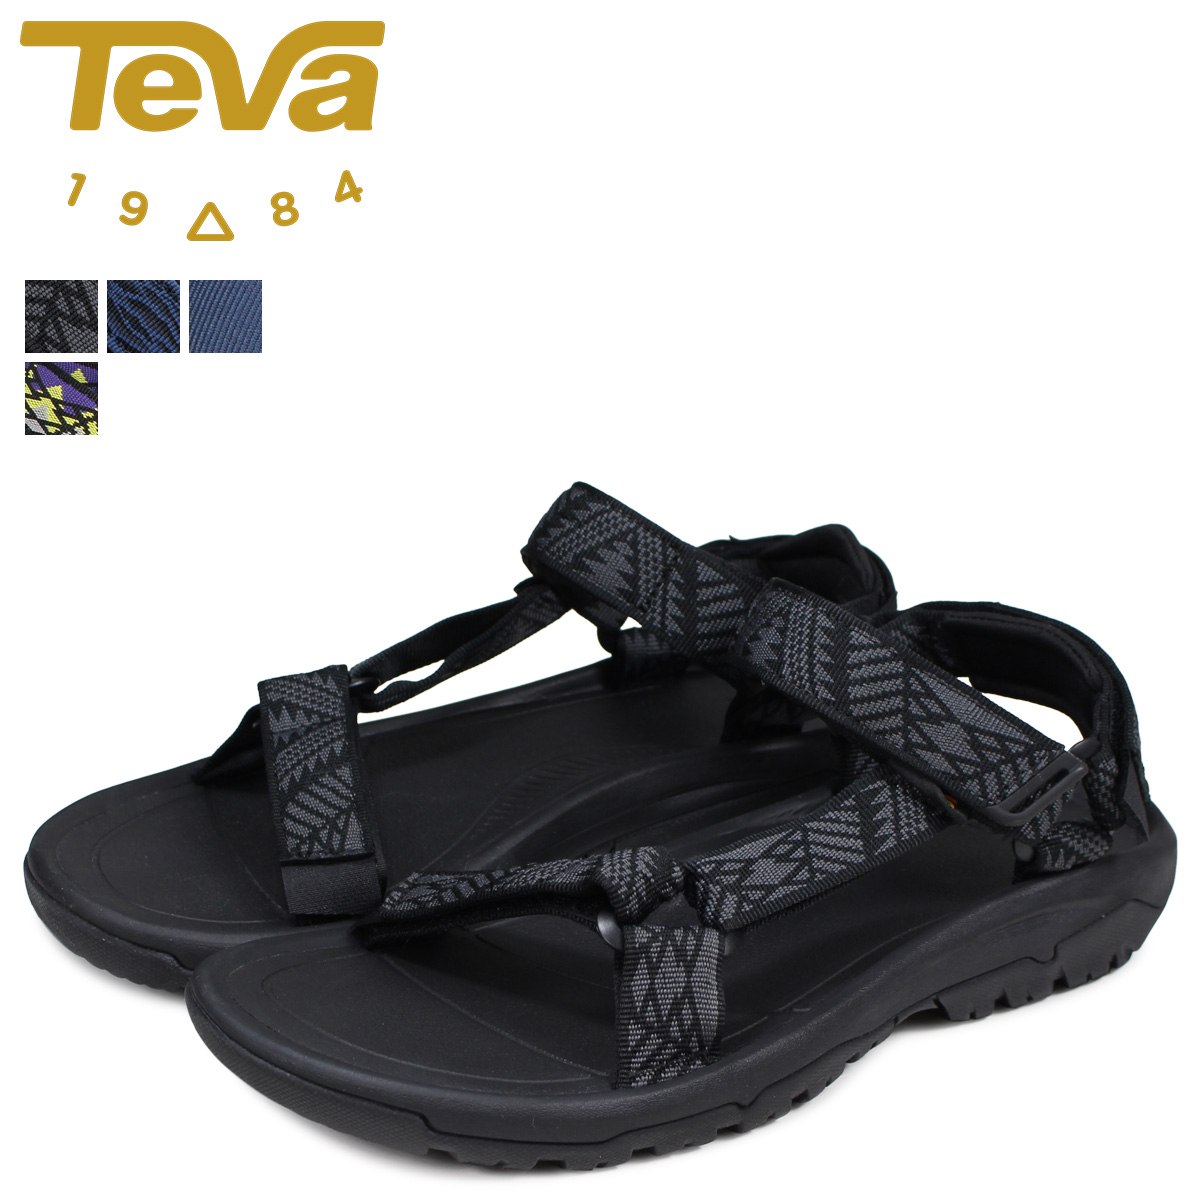 Teva Teva sandals hurricane XLT 2 sports sandals men HURRICANE black blue navy multi black 1019234